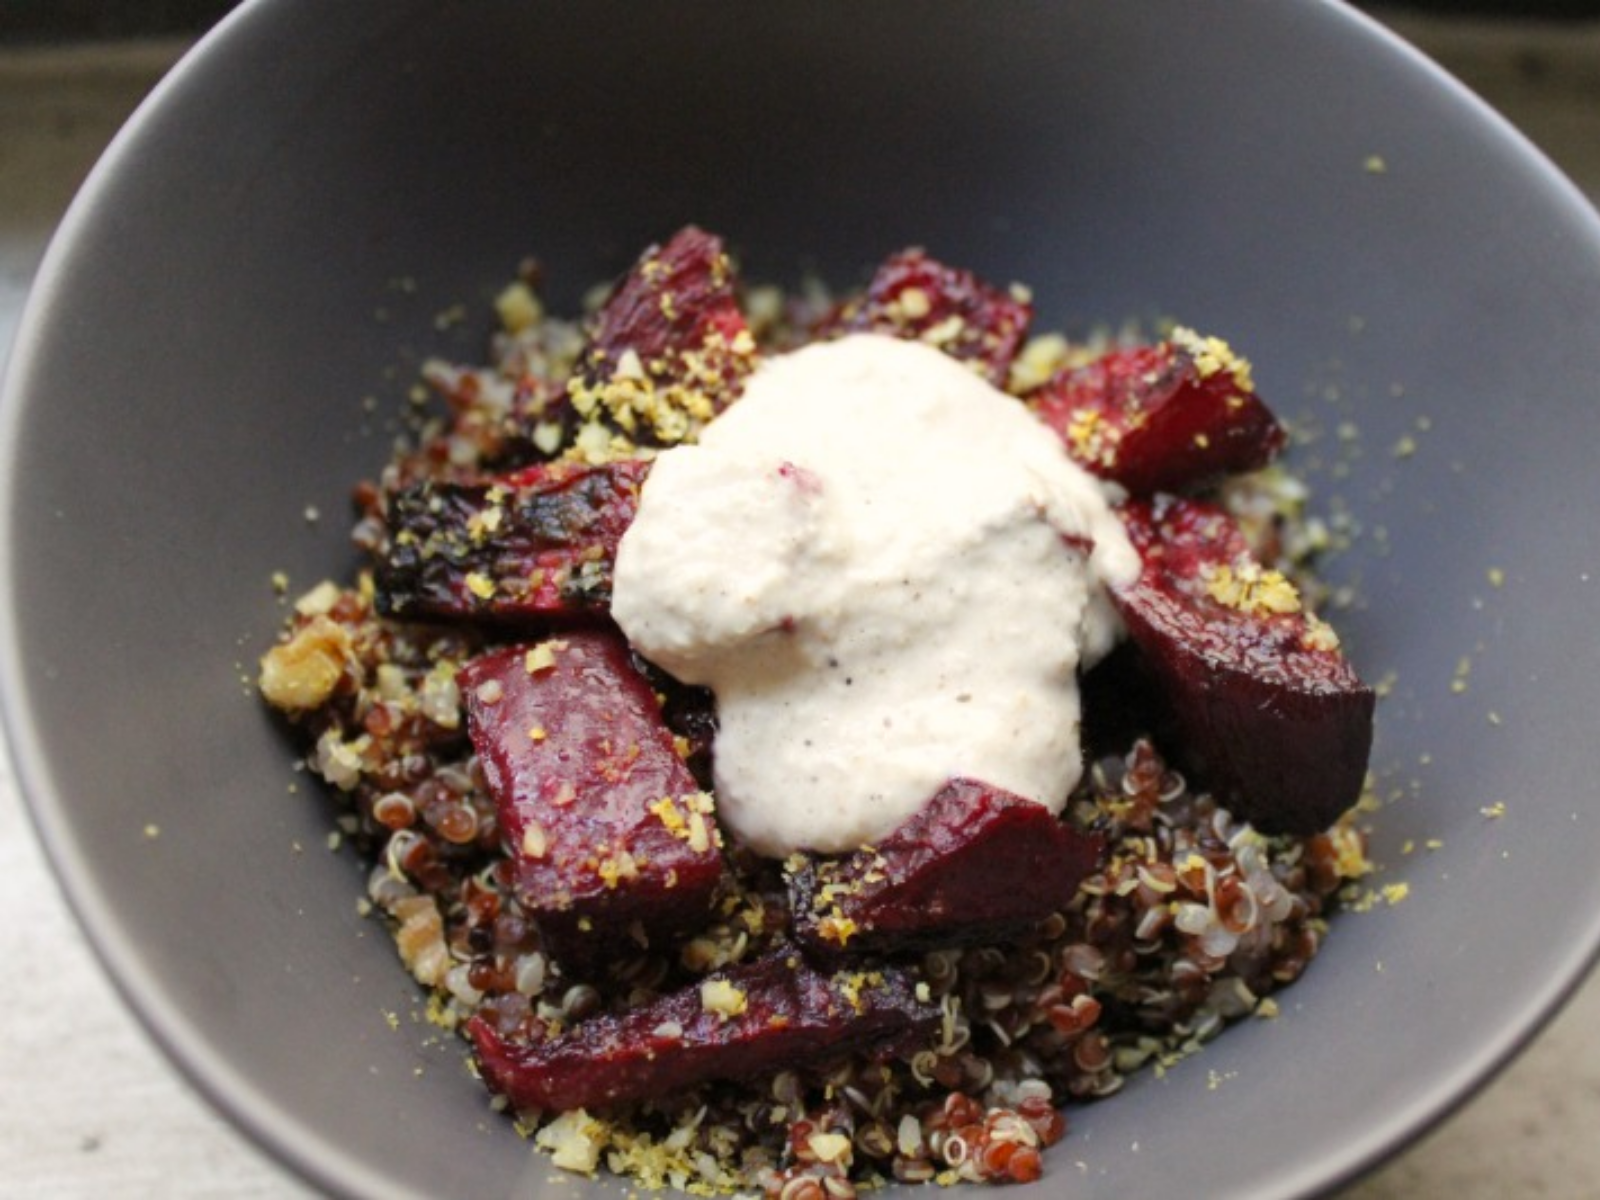 quinoa salad with roasted beets and tahini sauce